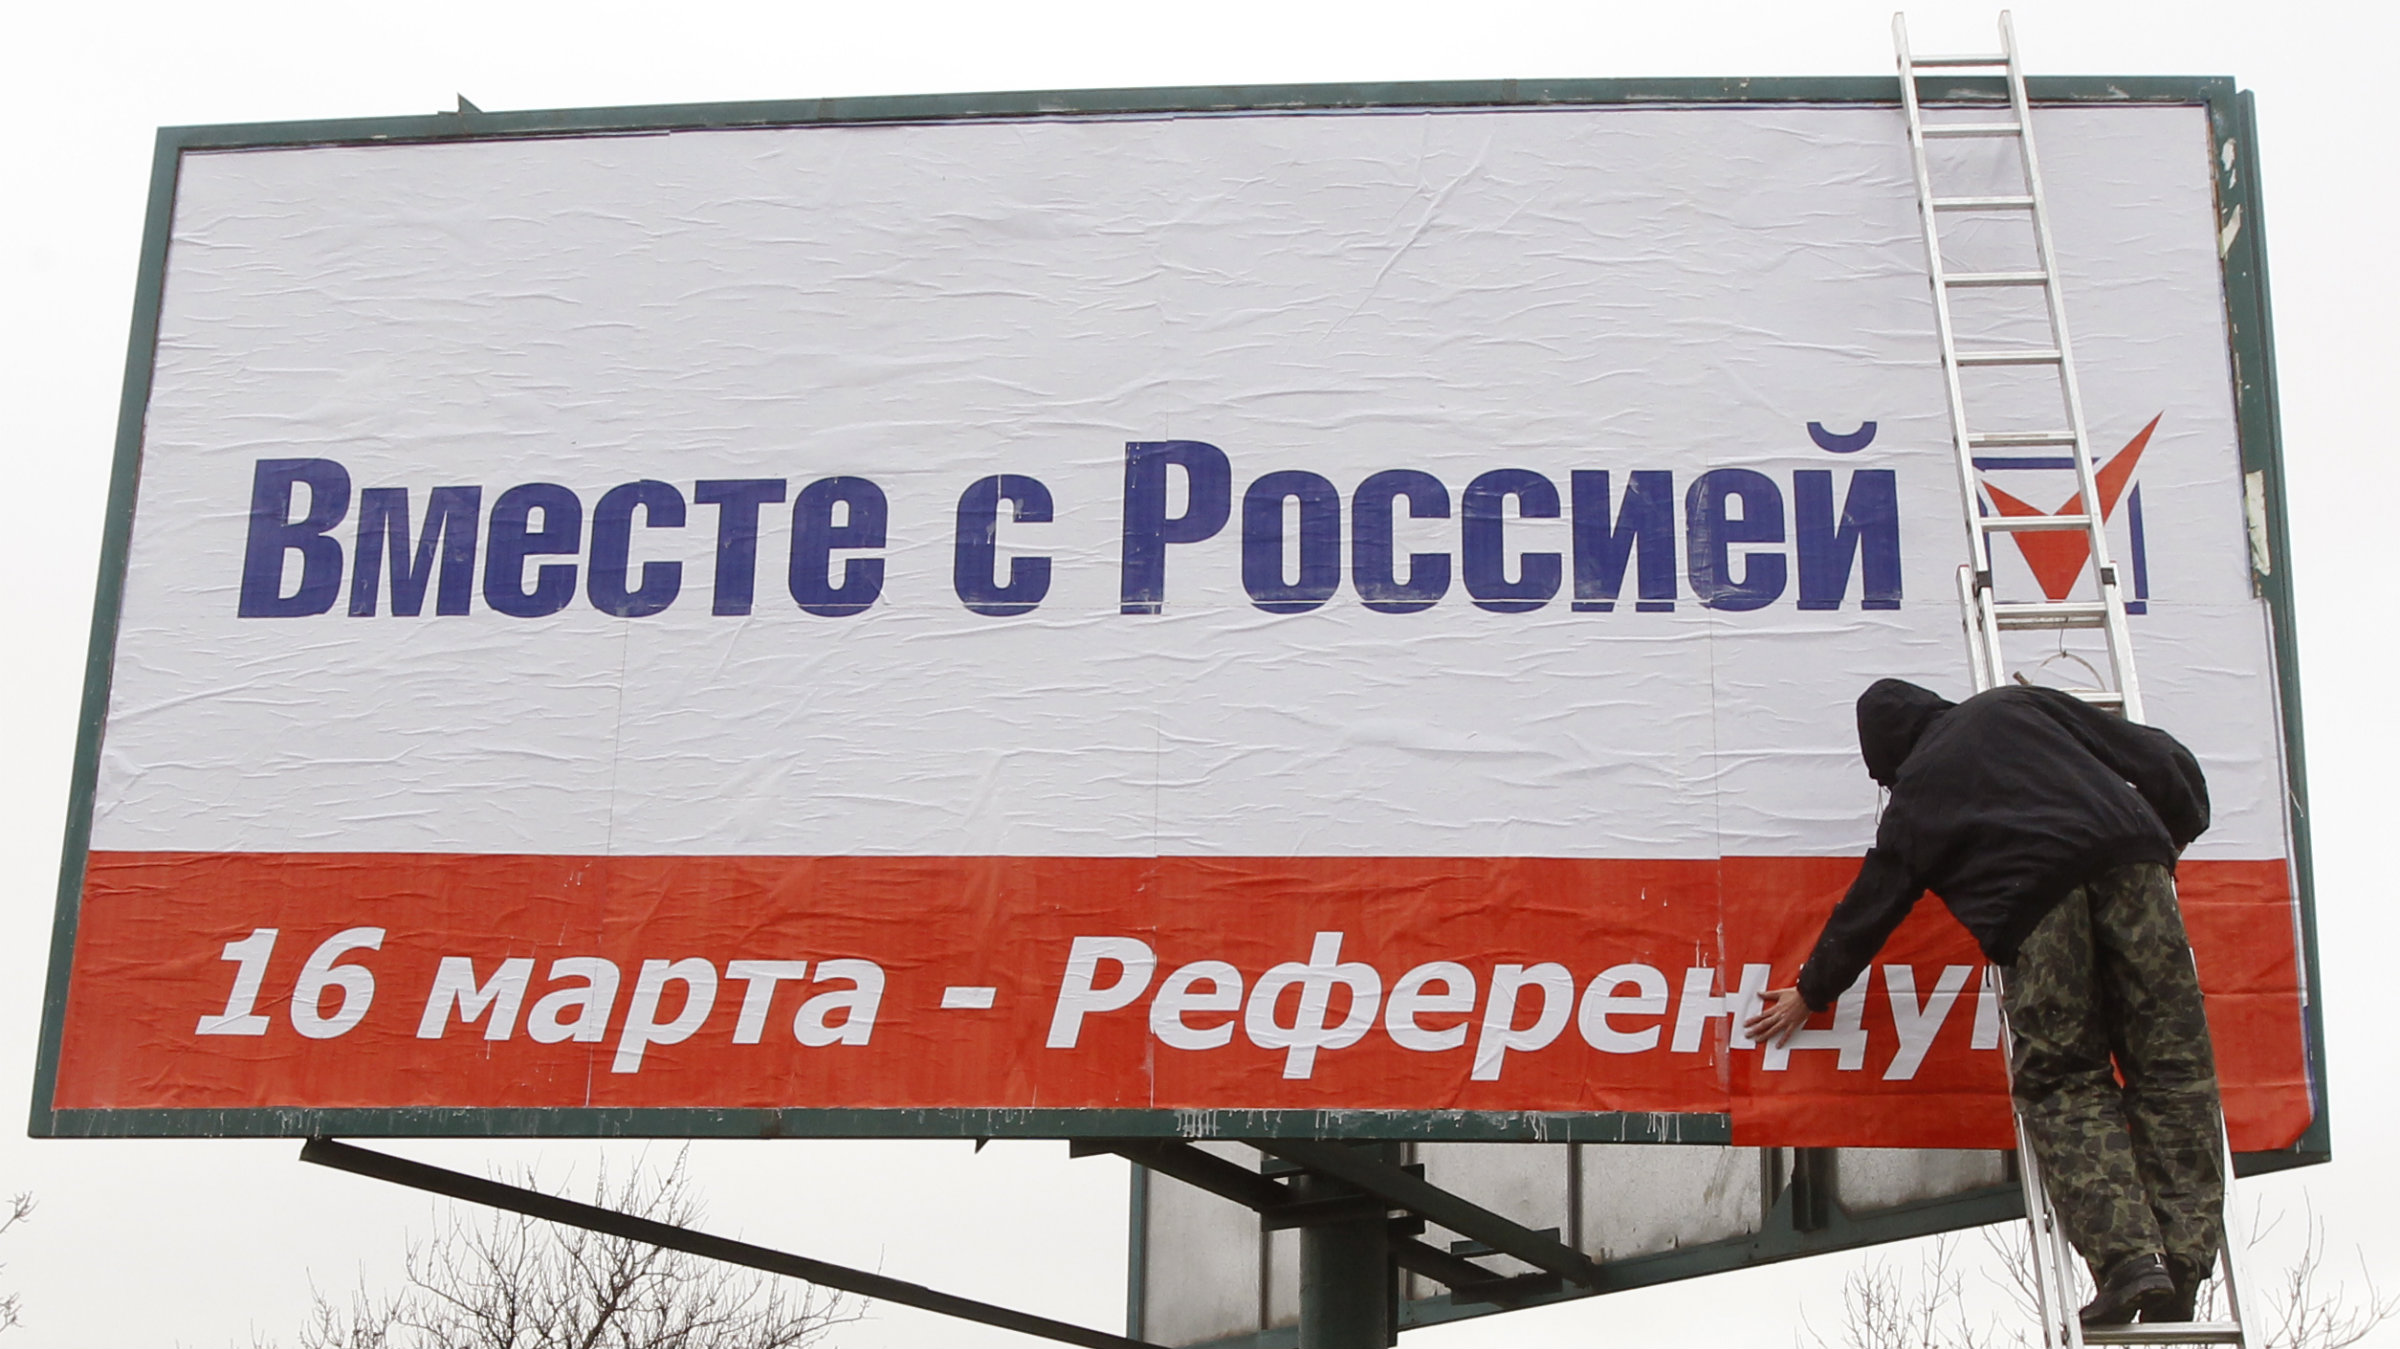 """Together with Russia. March 16 - referendum."" The impact will be felt far beyond Crimea."